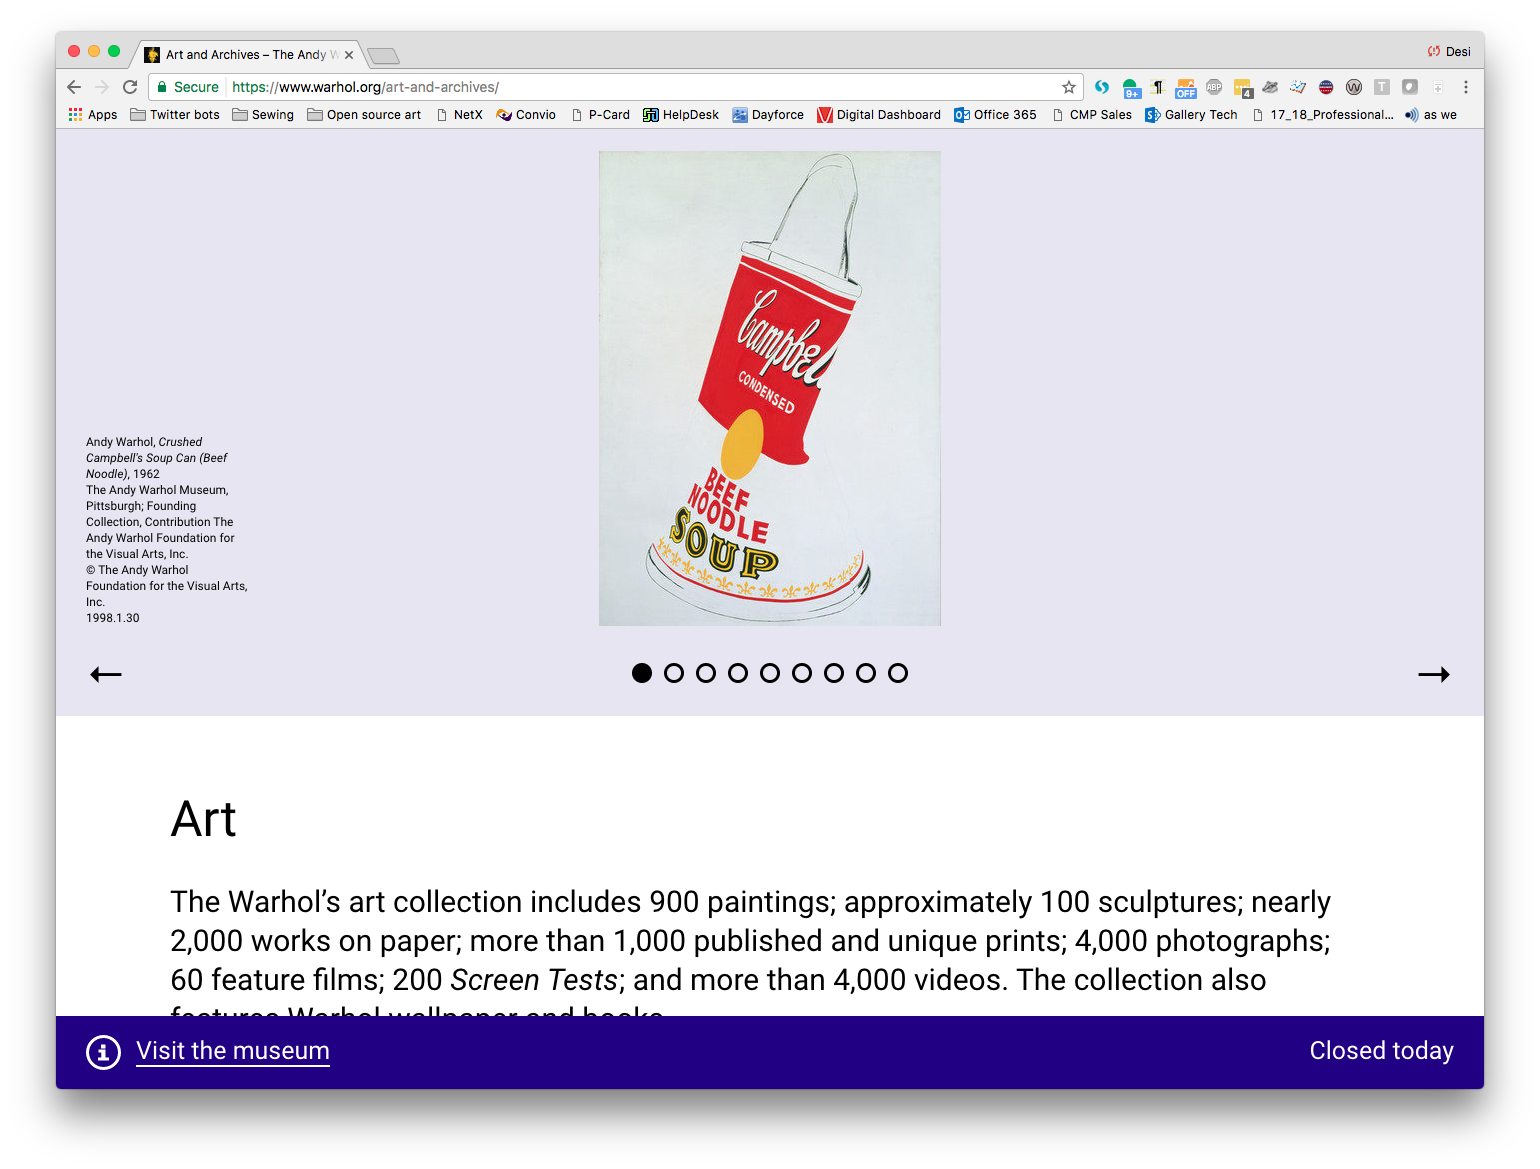 A screenshot of the Art and Archives on warhol.org page, featuring an image of Andy Warhol's painting Crushed Campbell's Soup Can